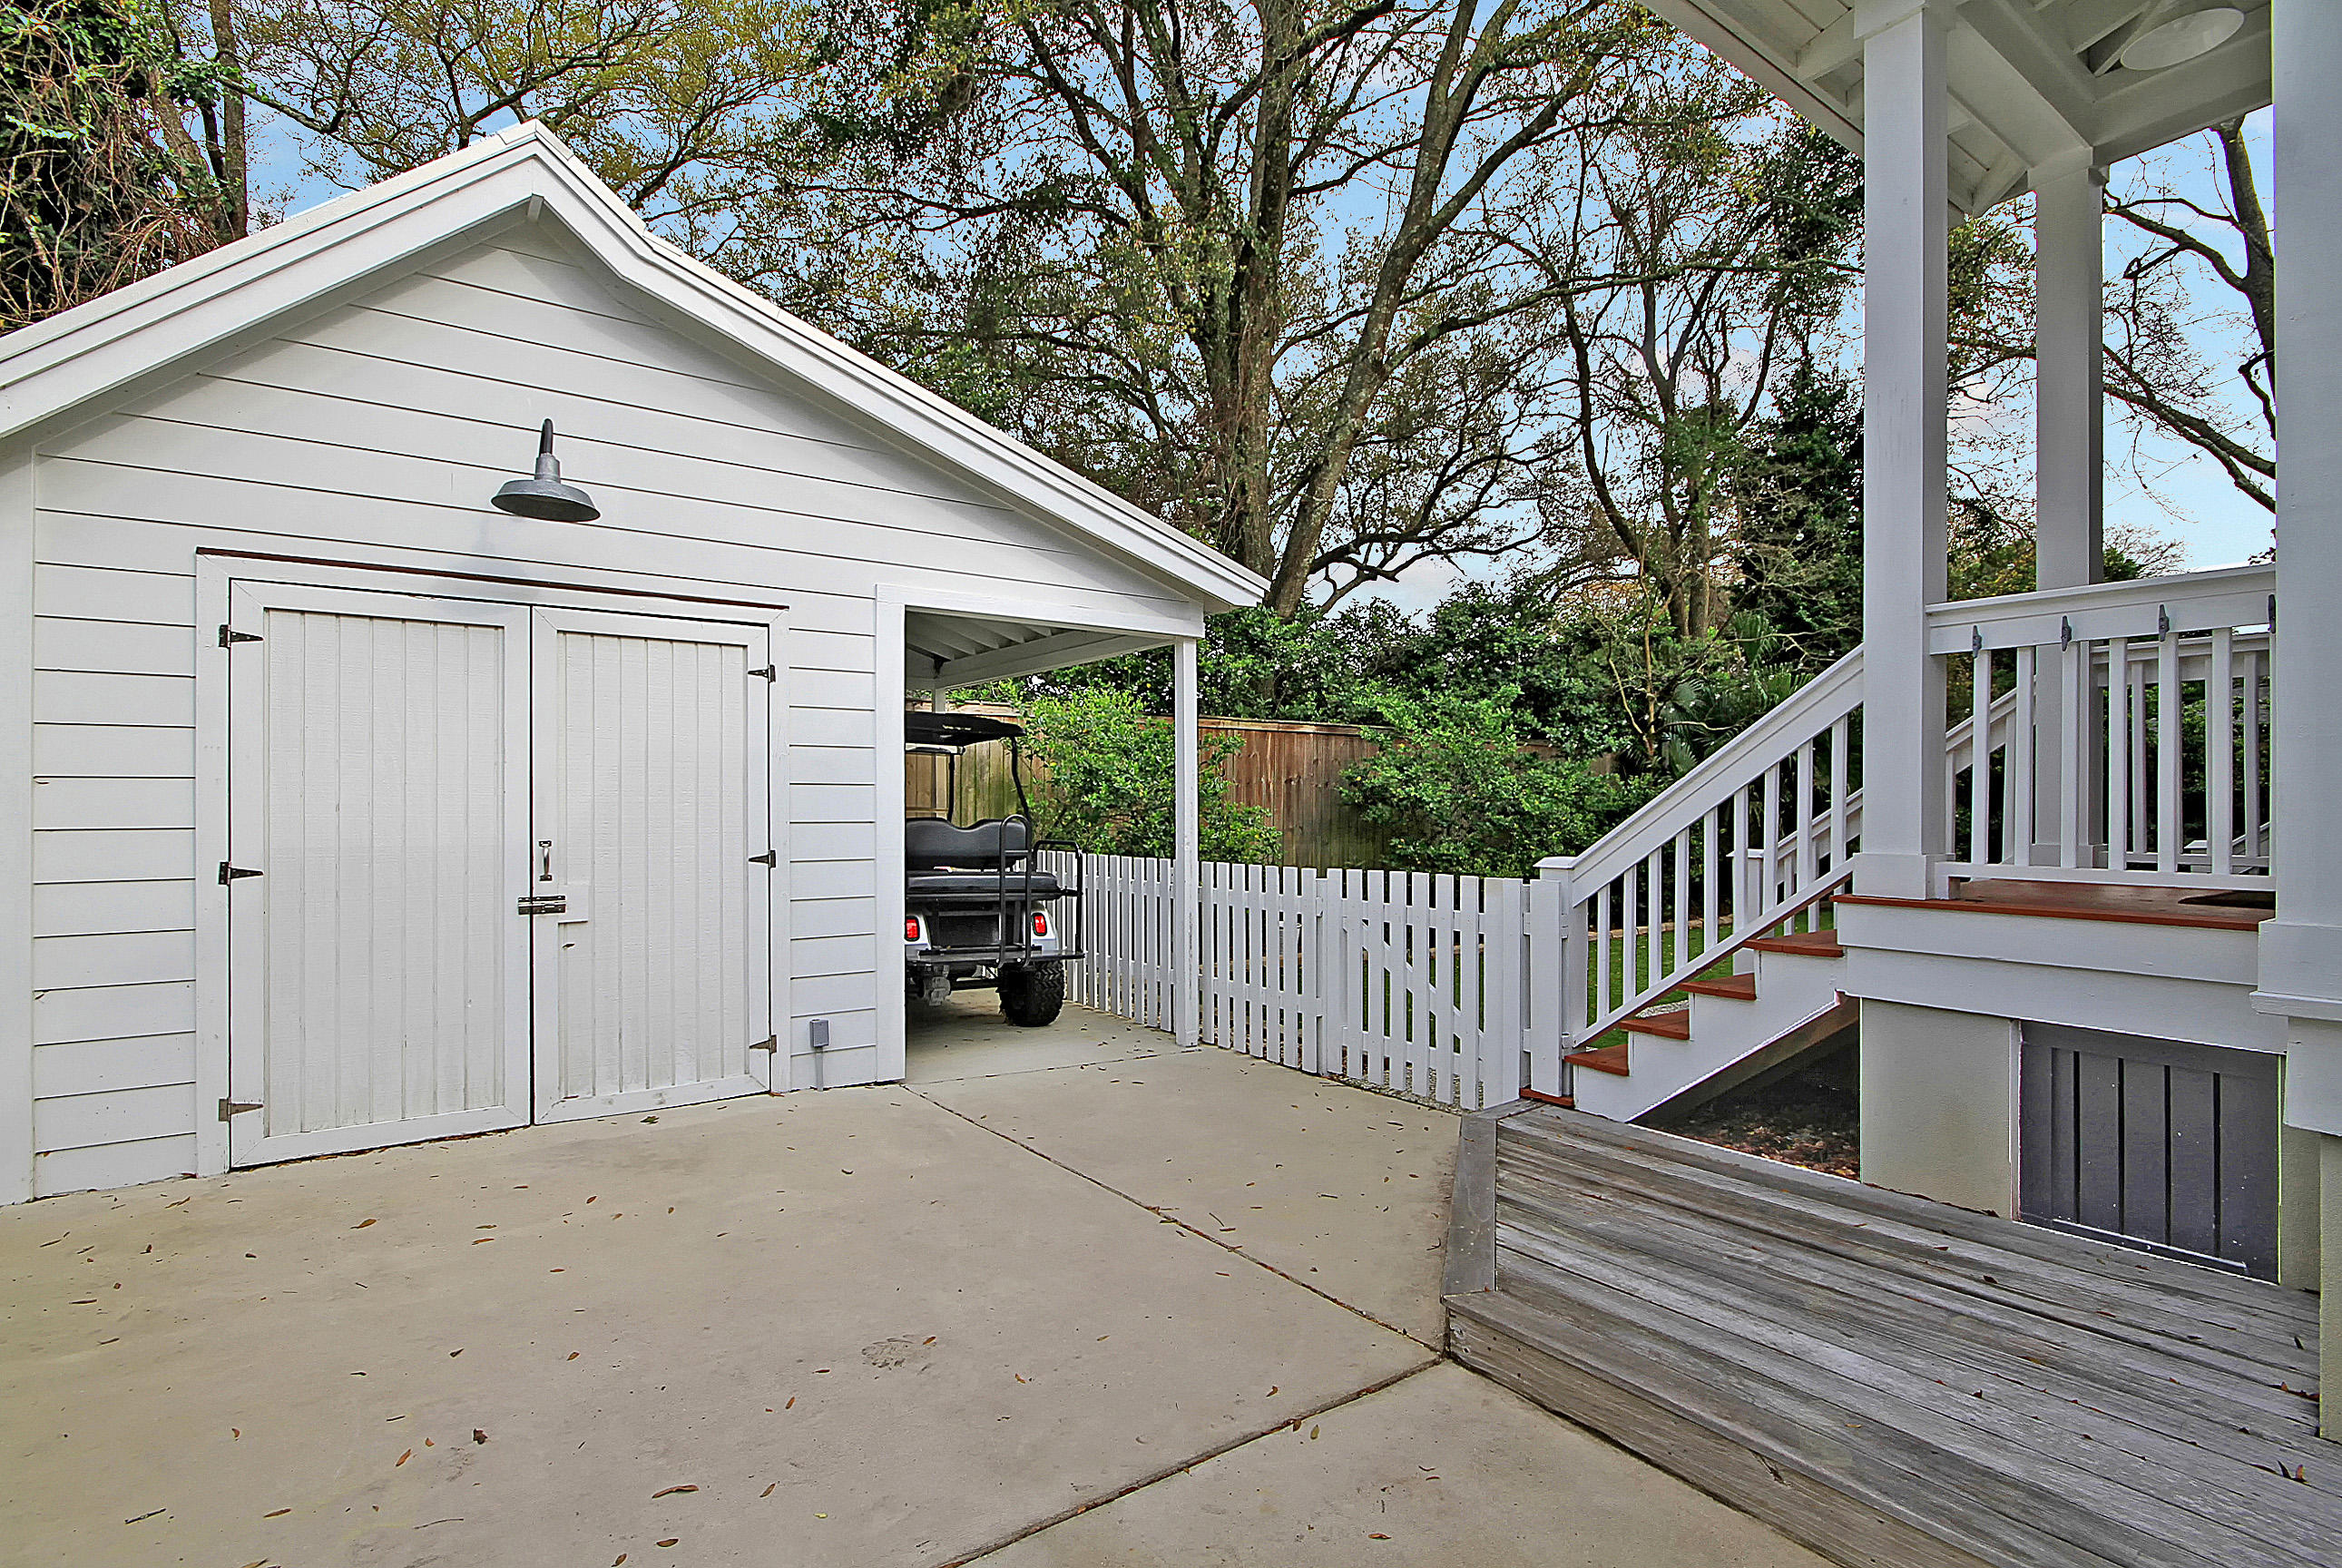 Old Mt Pleasant Homes For Sale - 718 Magnolia, Mount Pleasant, SC - 8